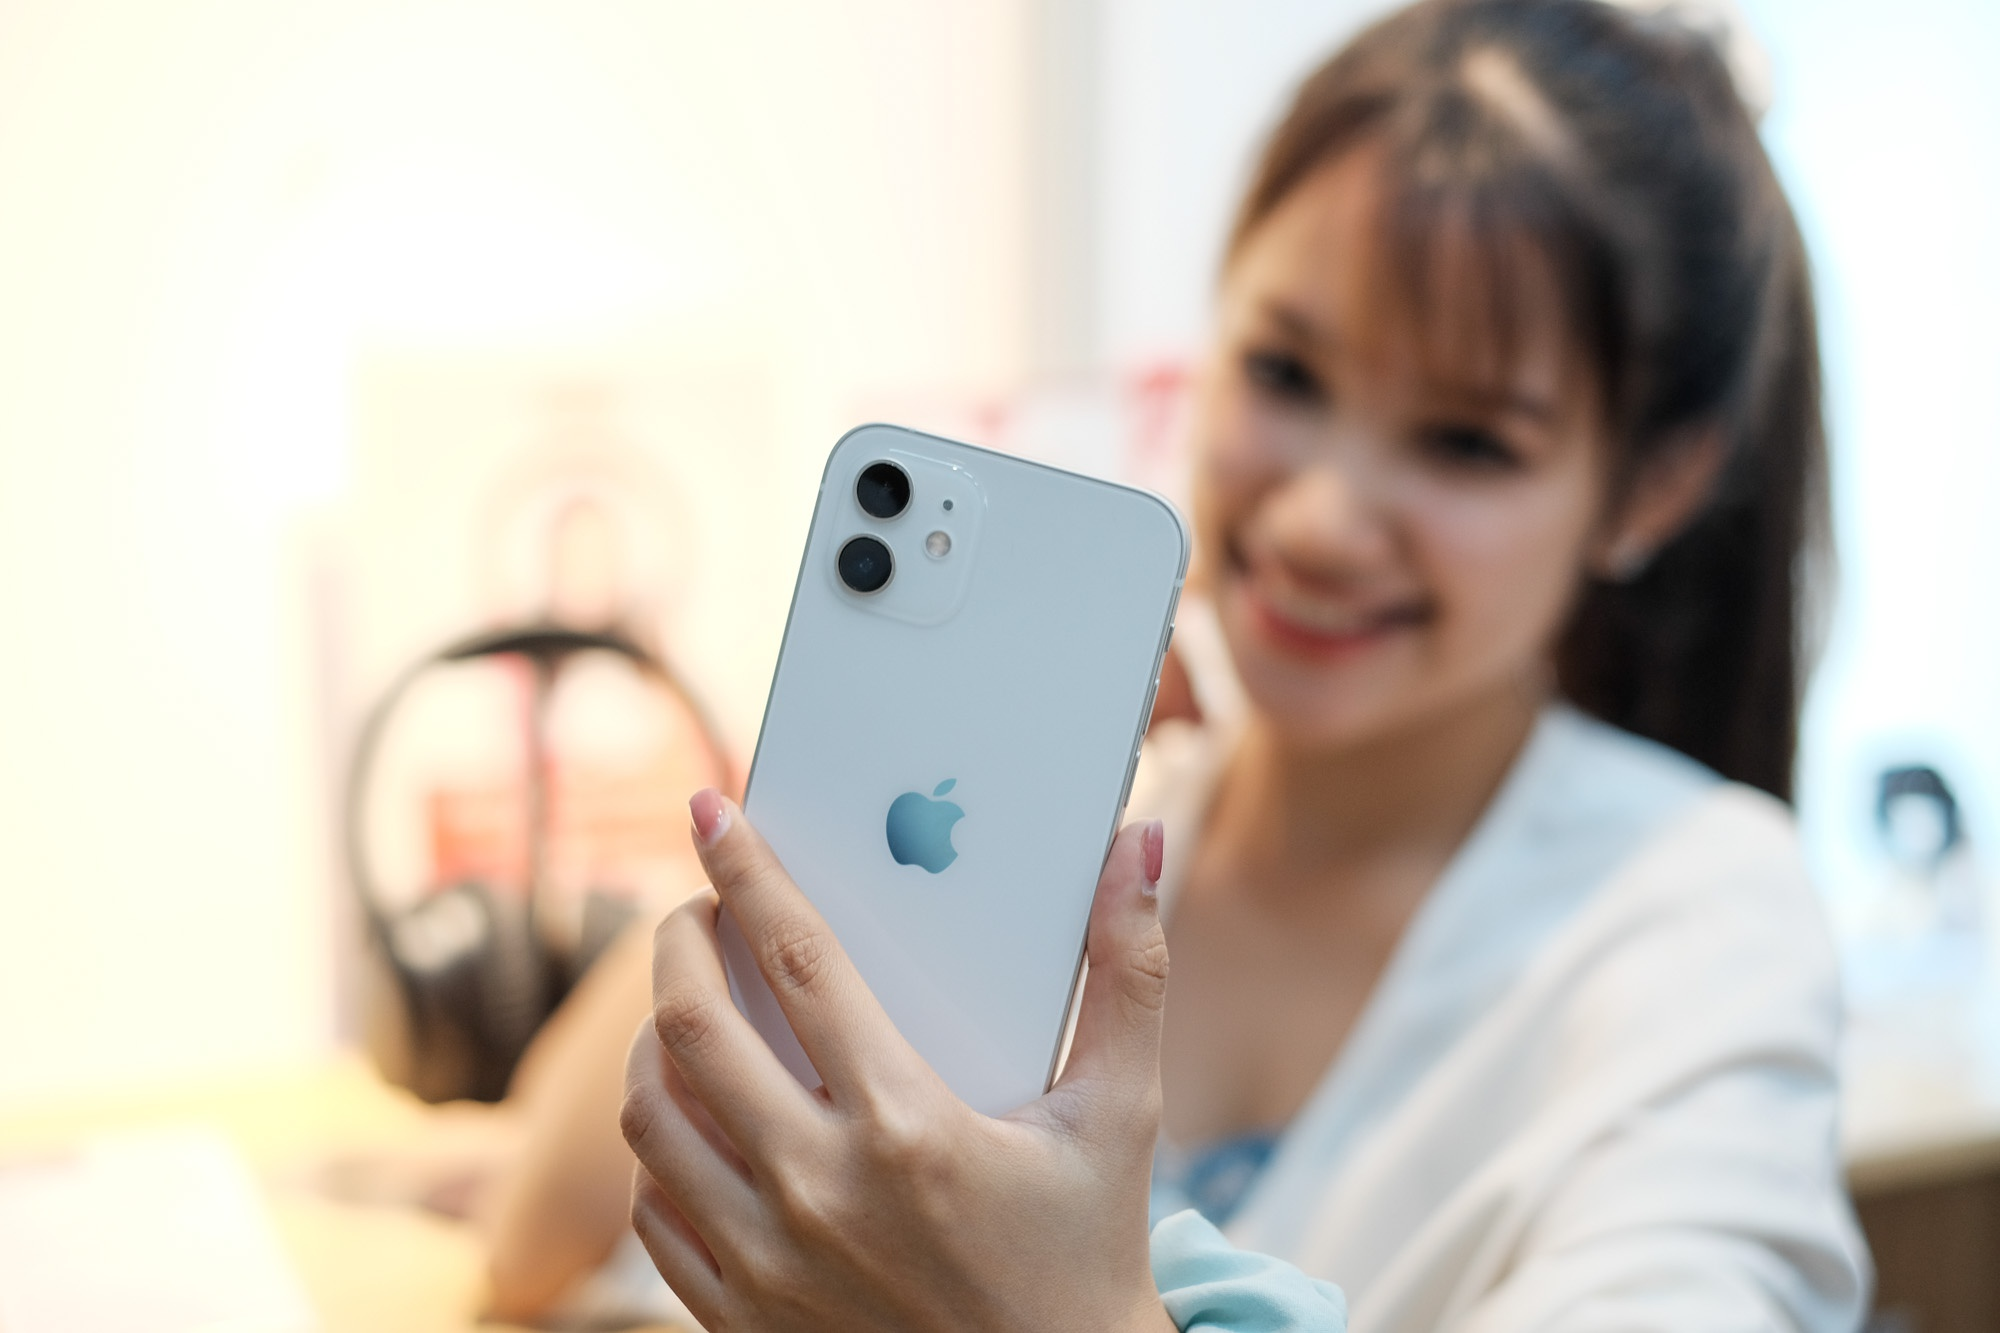 bao loan tai nha may apple o an do anh 4